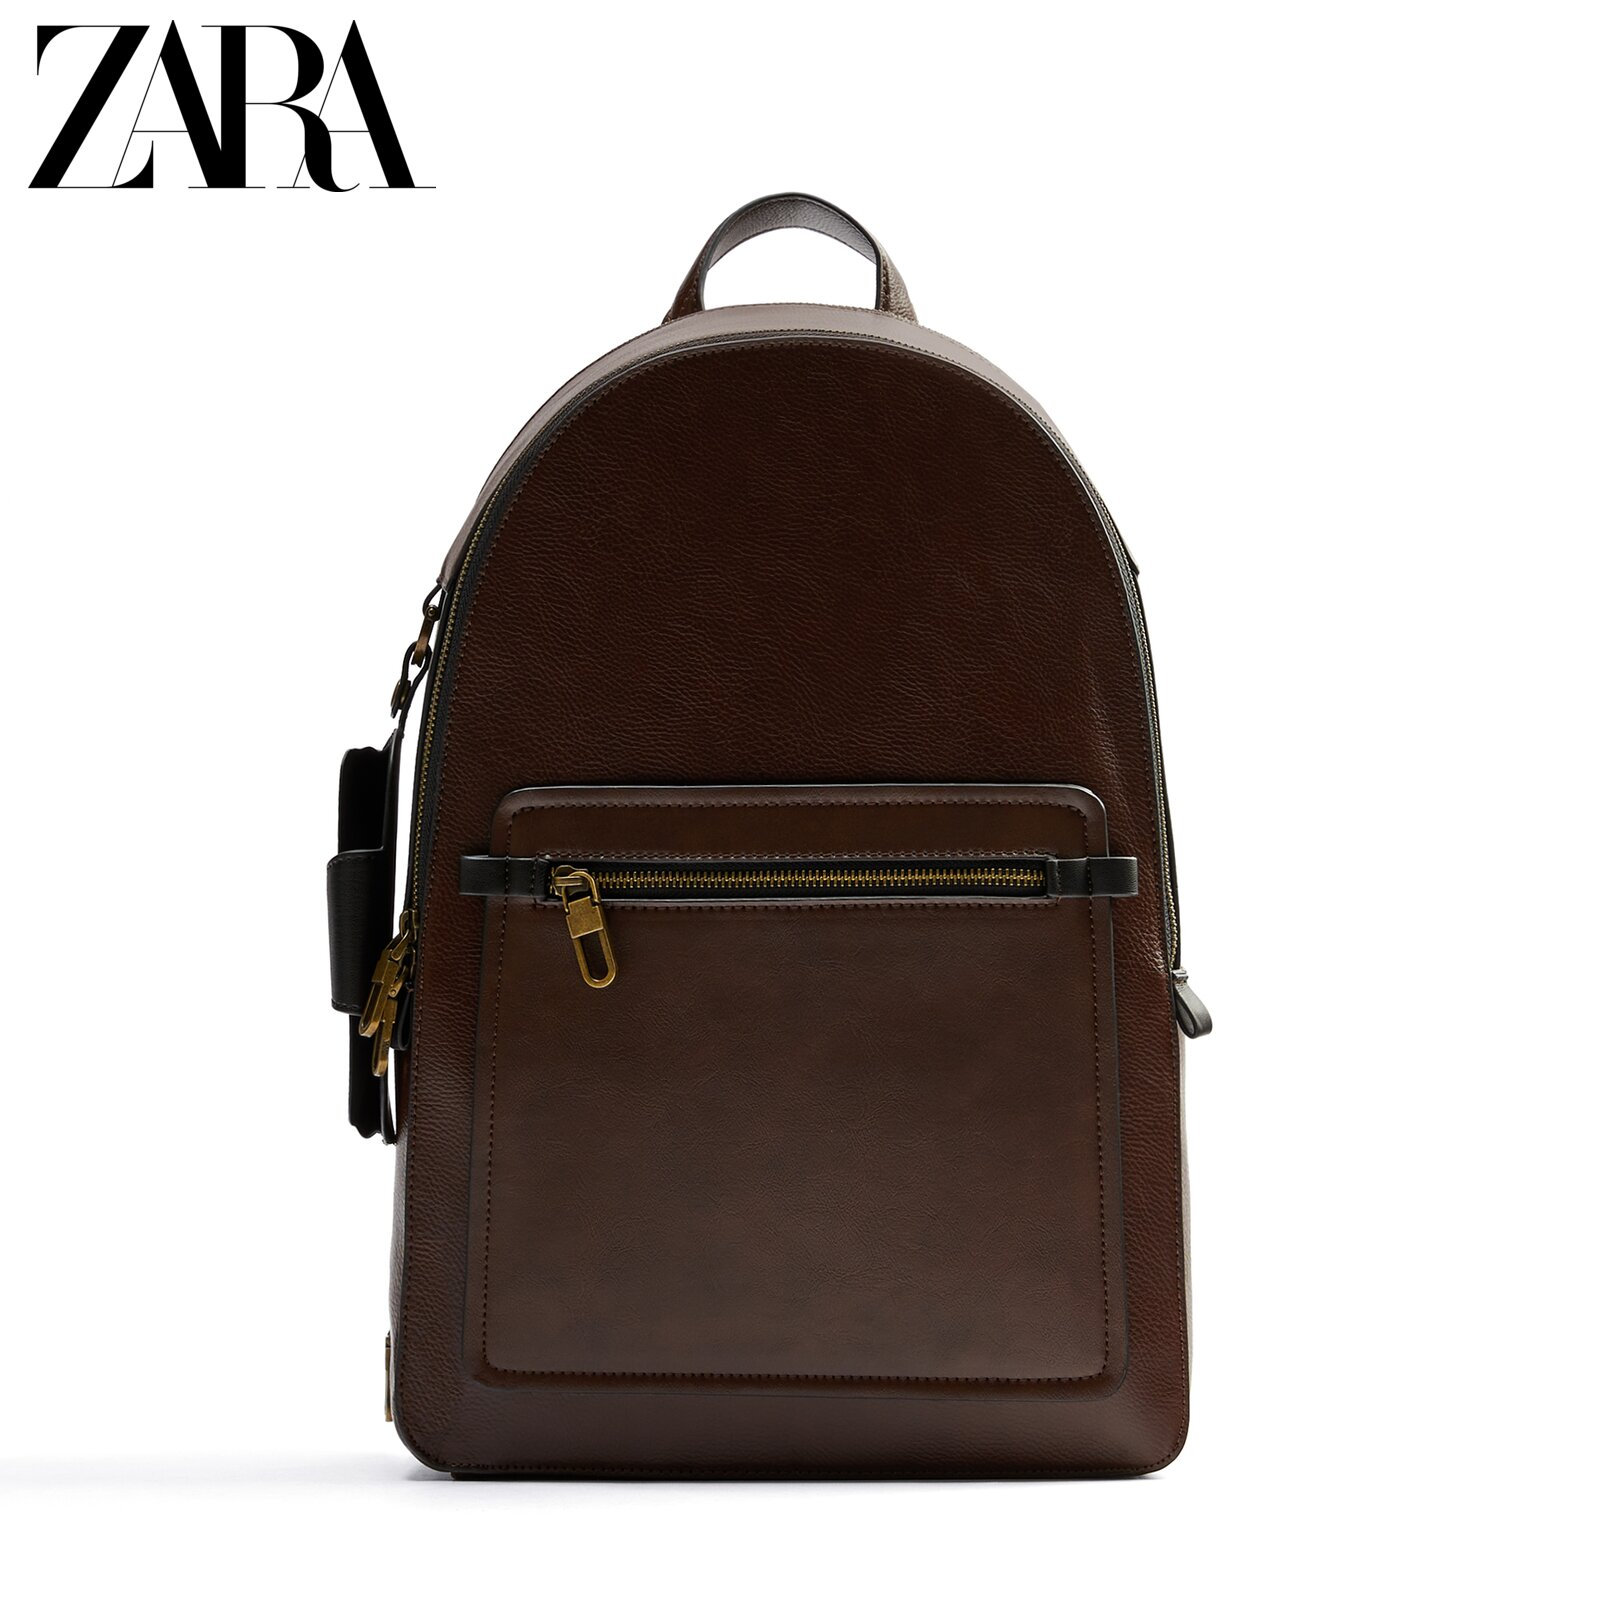 Zara new men's bag brown classic large-capacity backpack with mirror sleeve 13203620105